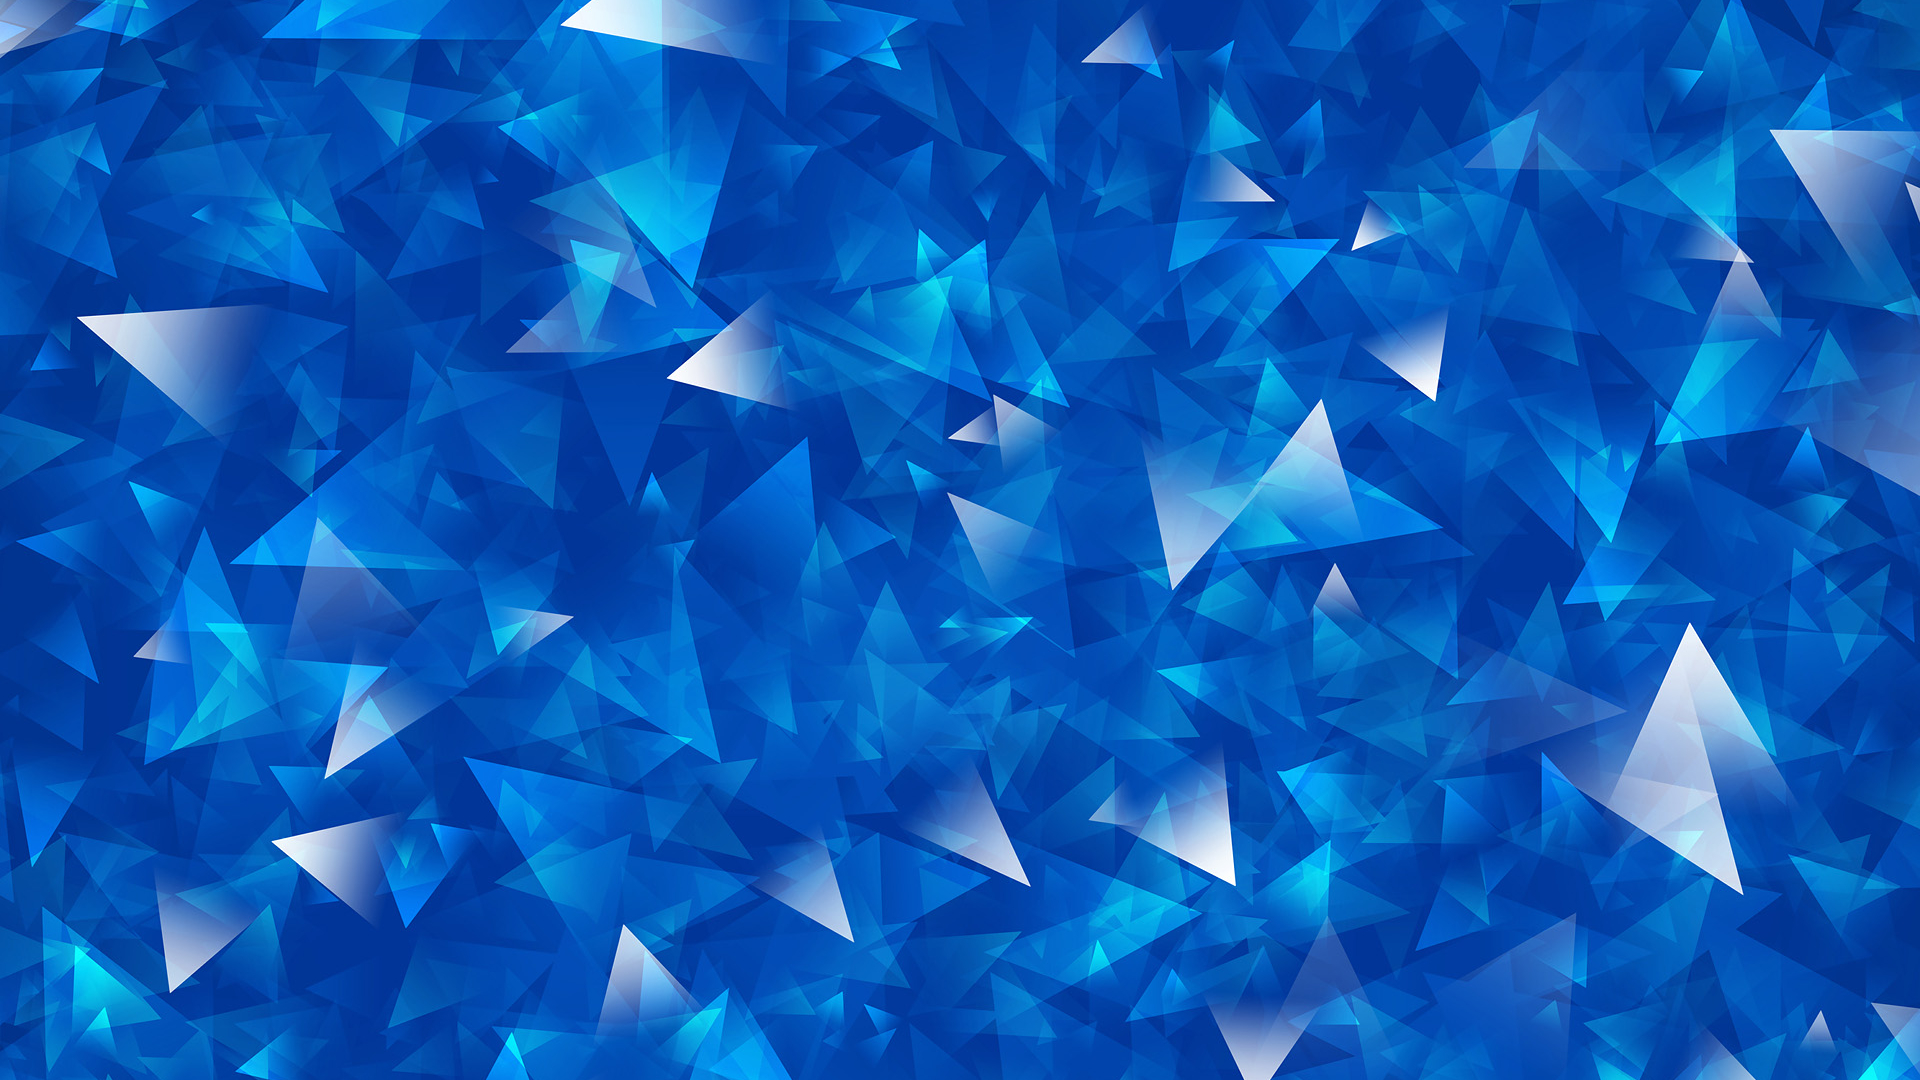 Free Download Blue Desktop Backgrounds Wallpaper High Definition High Quality 1920x1200 For Your Desktop Mobile Tablet Explore 75 Blue Wallpaper Background Dark Blue Background Wallpaper Blue Hd Wallpaper Blue Abstract Wallpaper